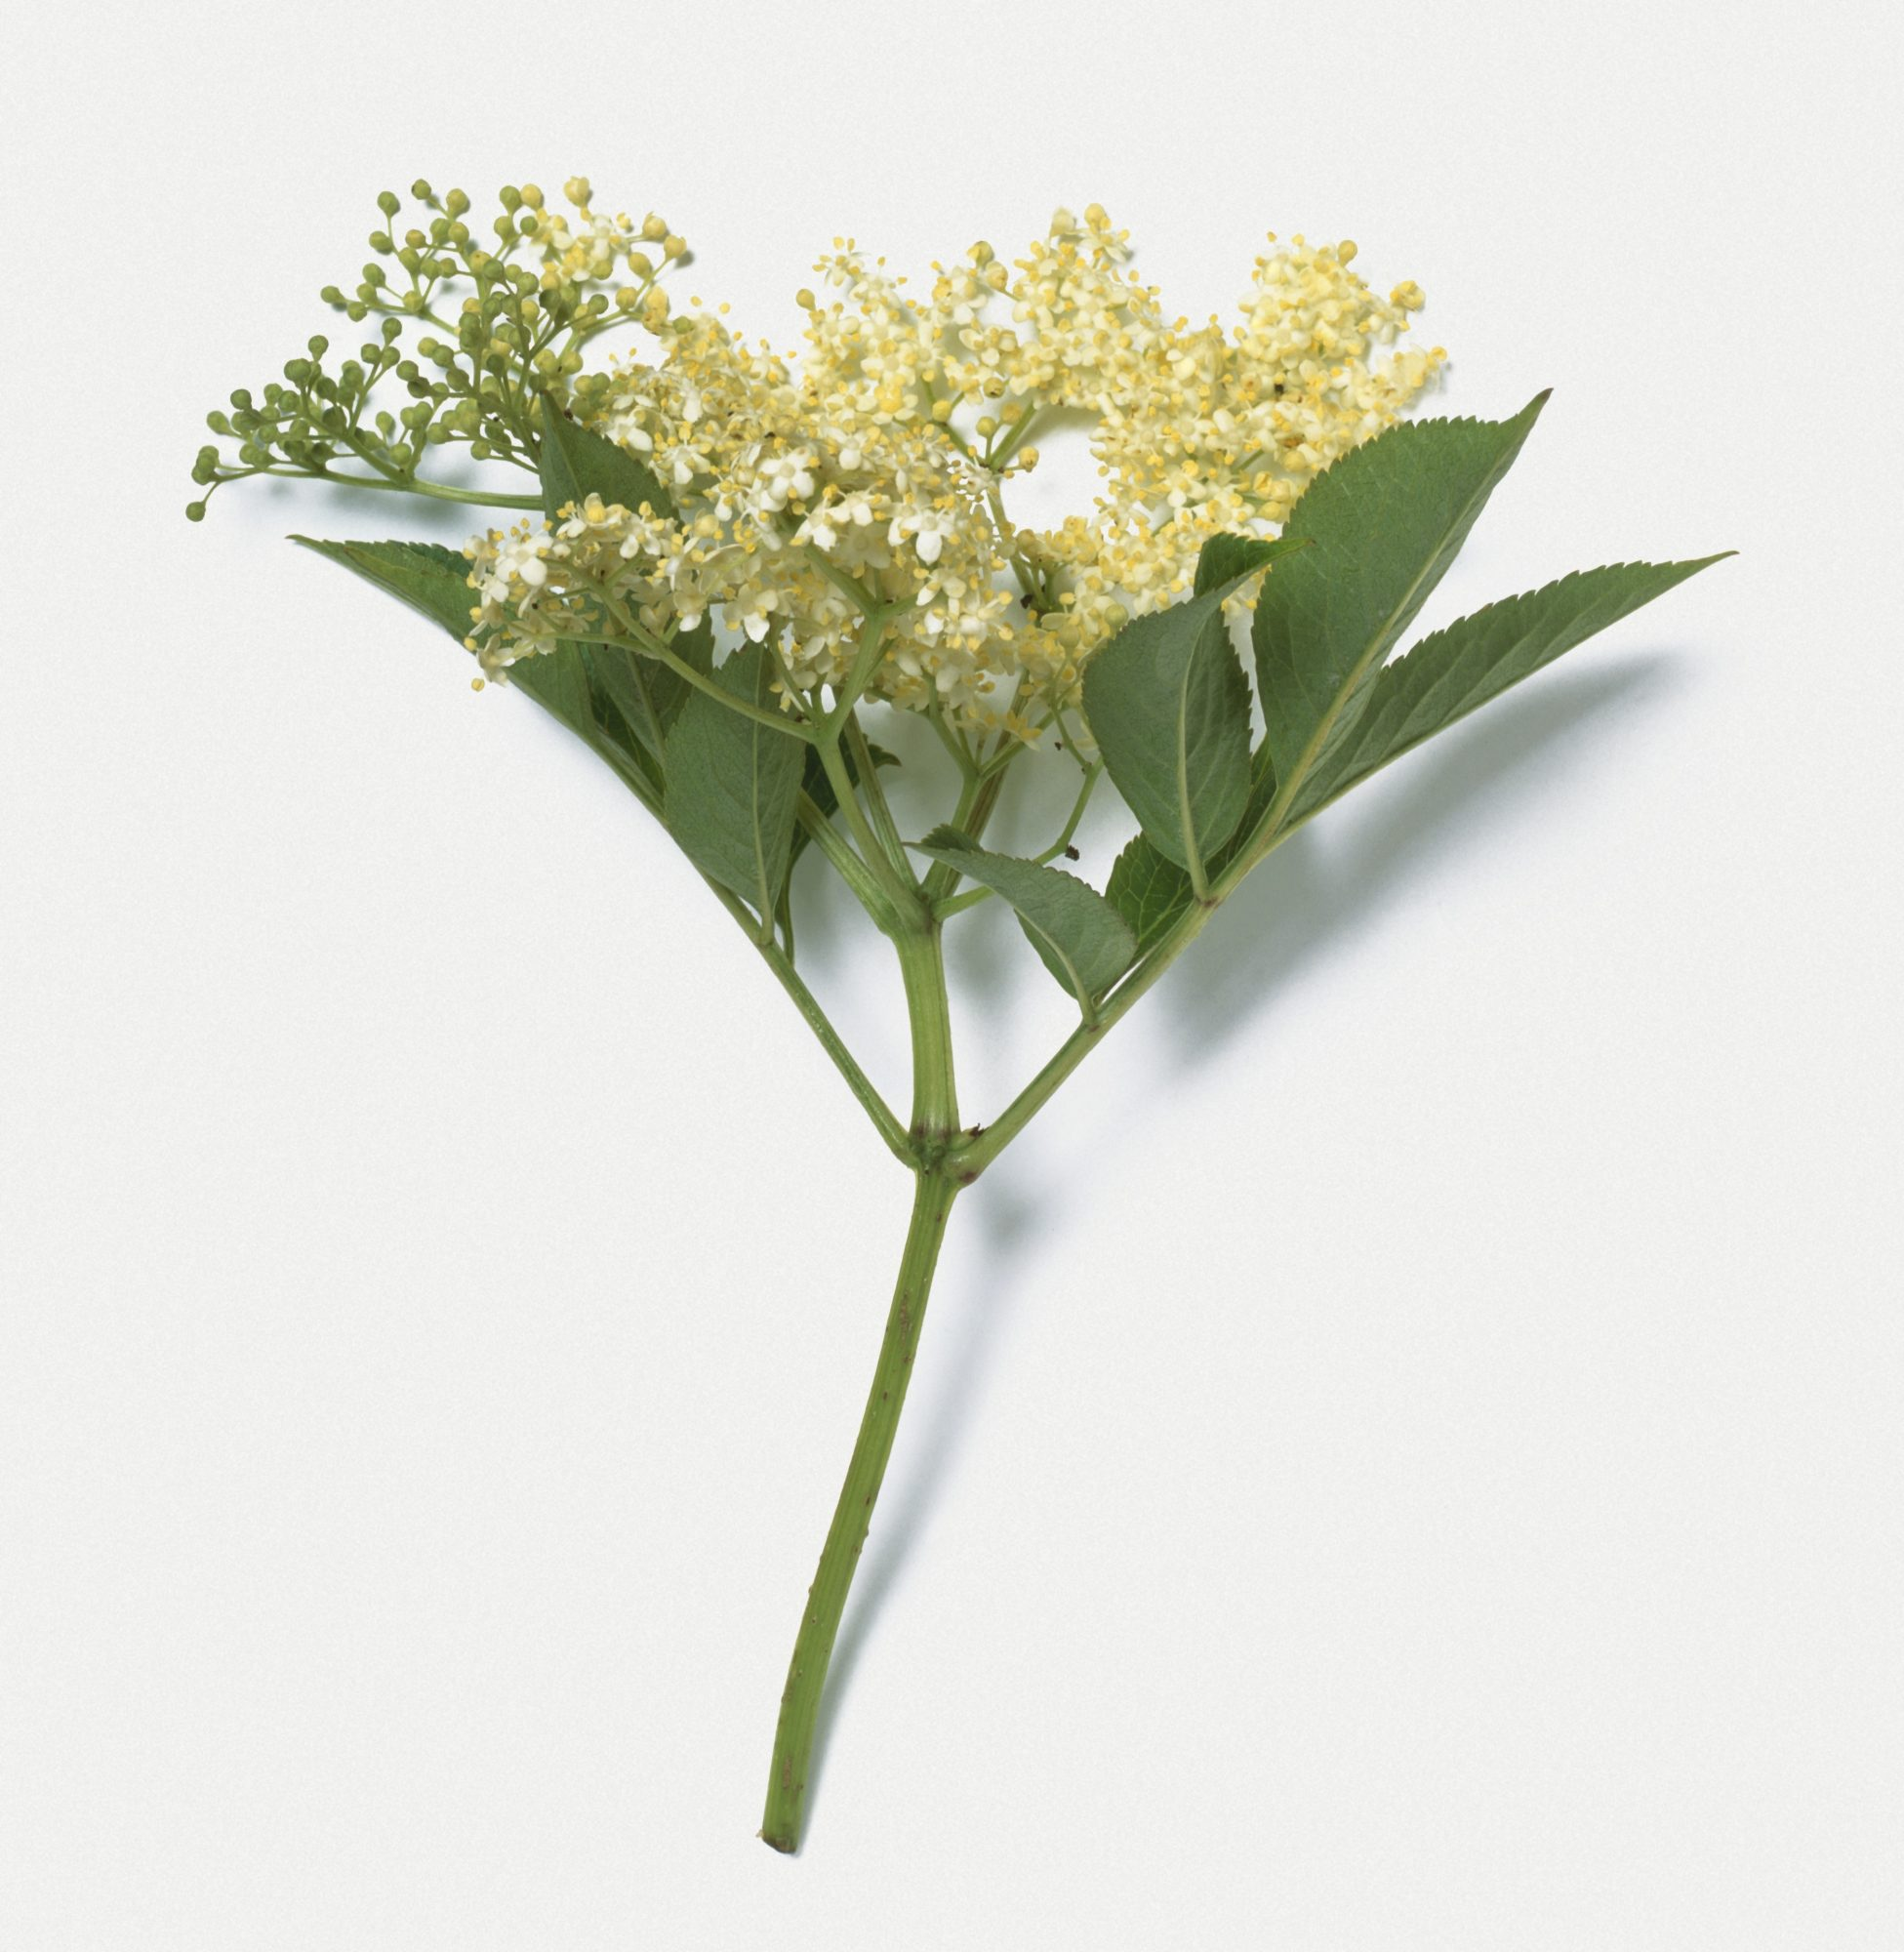 Elderflower plant